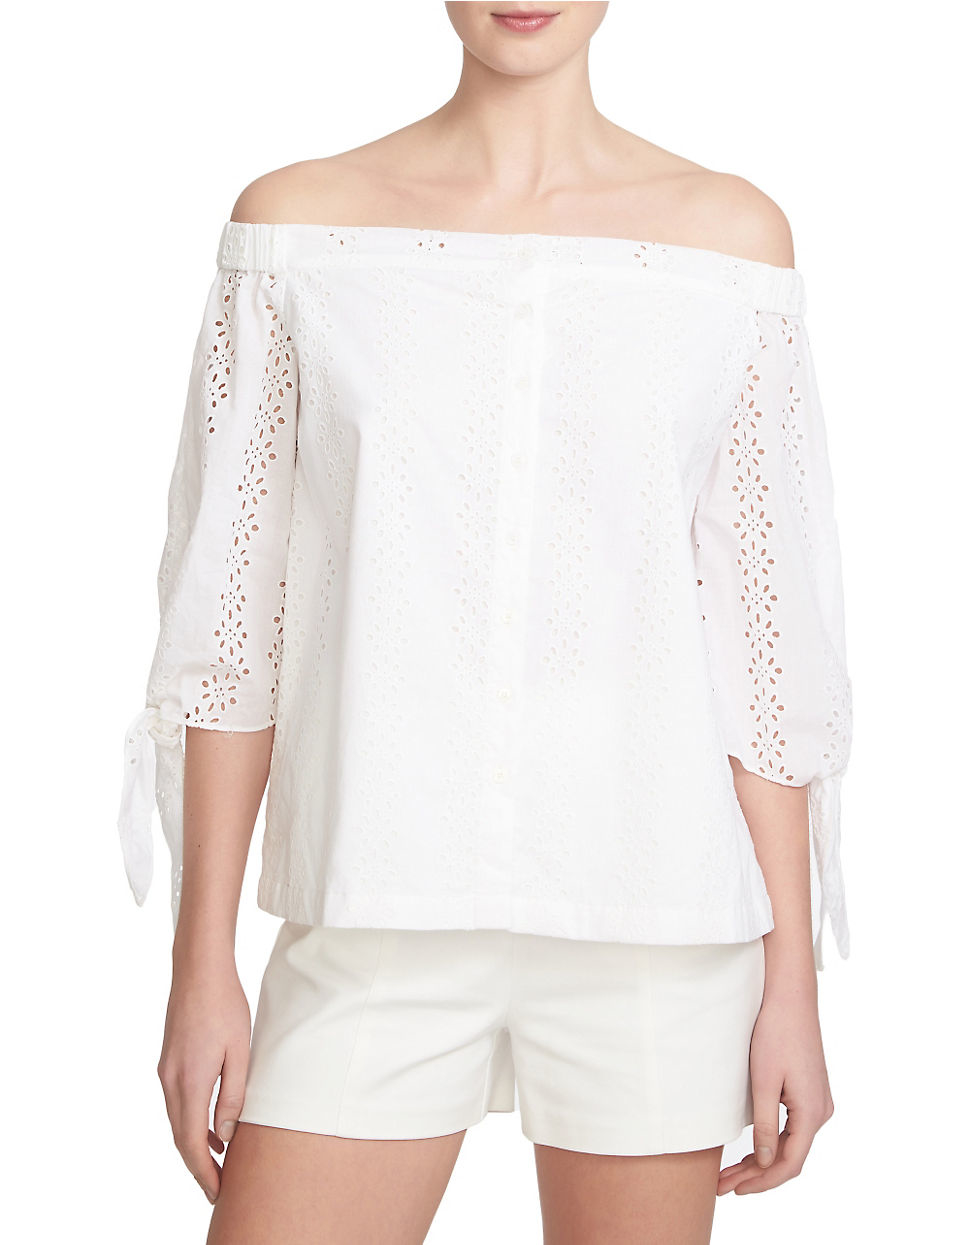 Lyst - 1.State Off-the-shoulder Eyelet Top in White c2b10e87e7cb